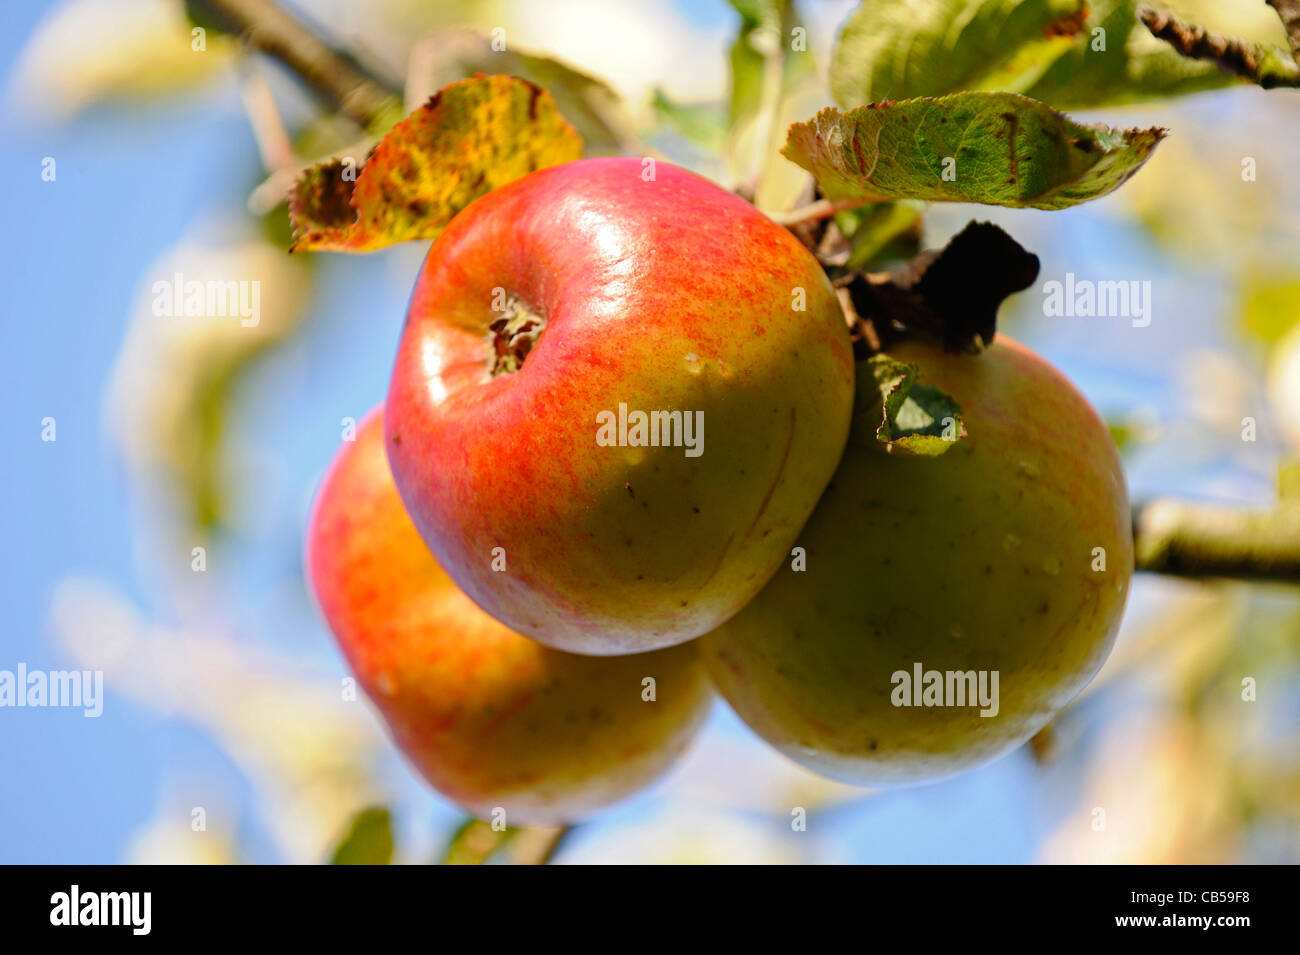 Three red ripe English apples ready to be picked. - Stock Image